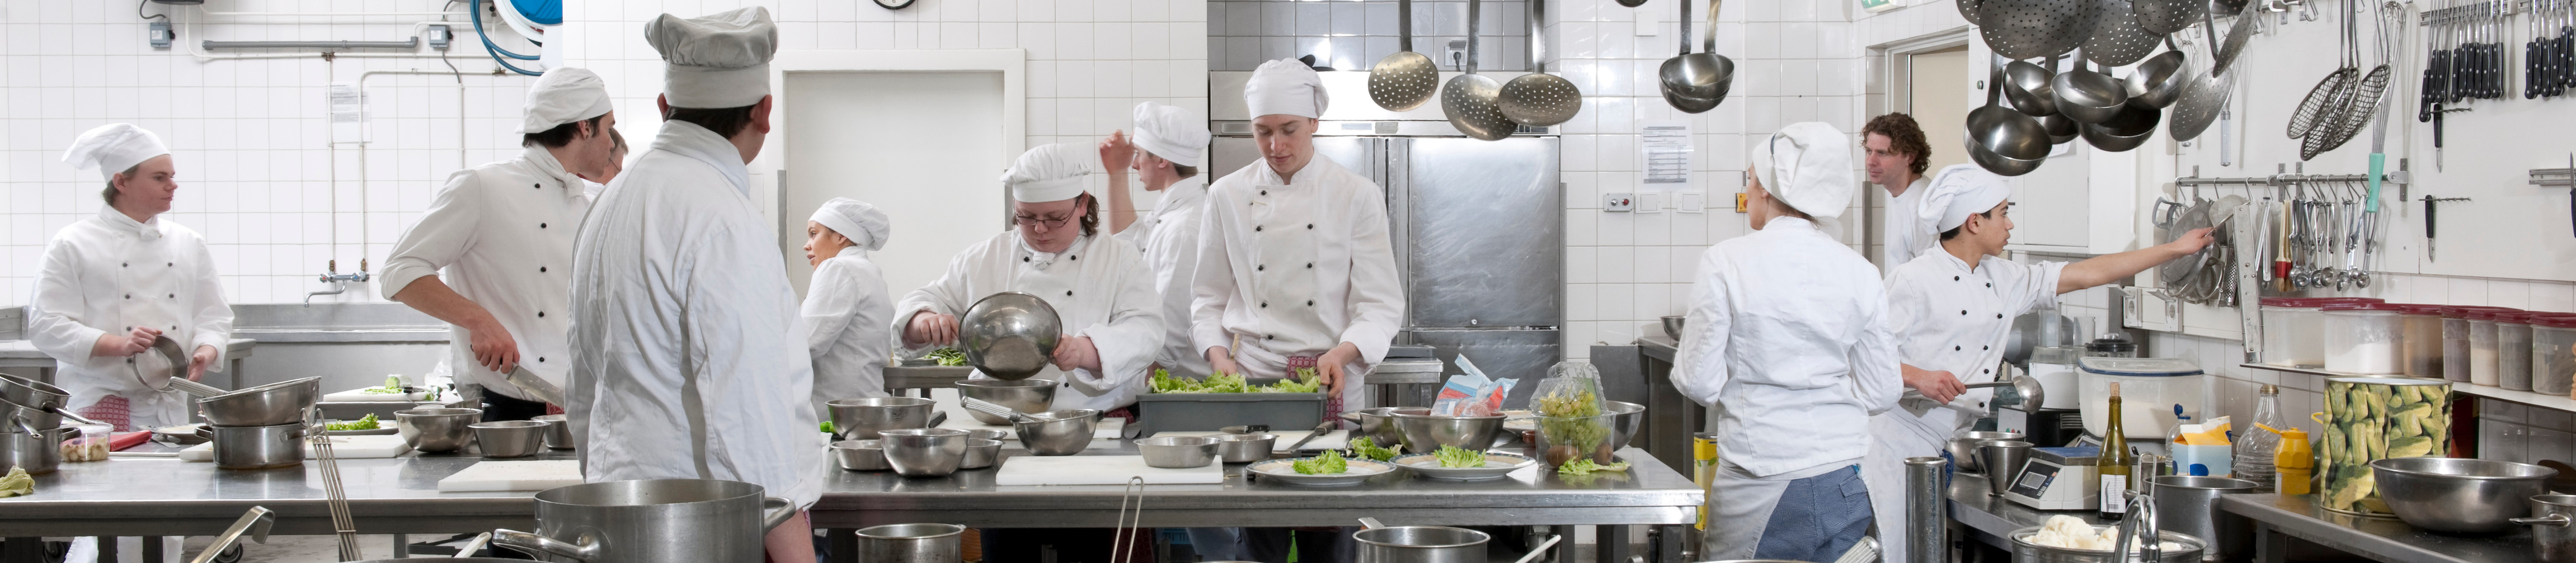 chef-trainees